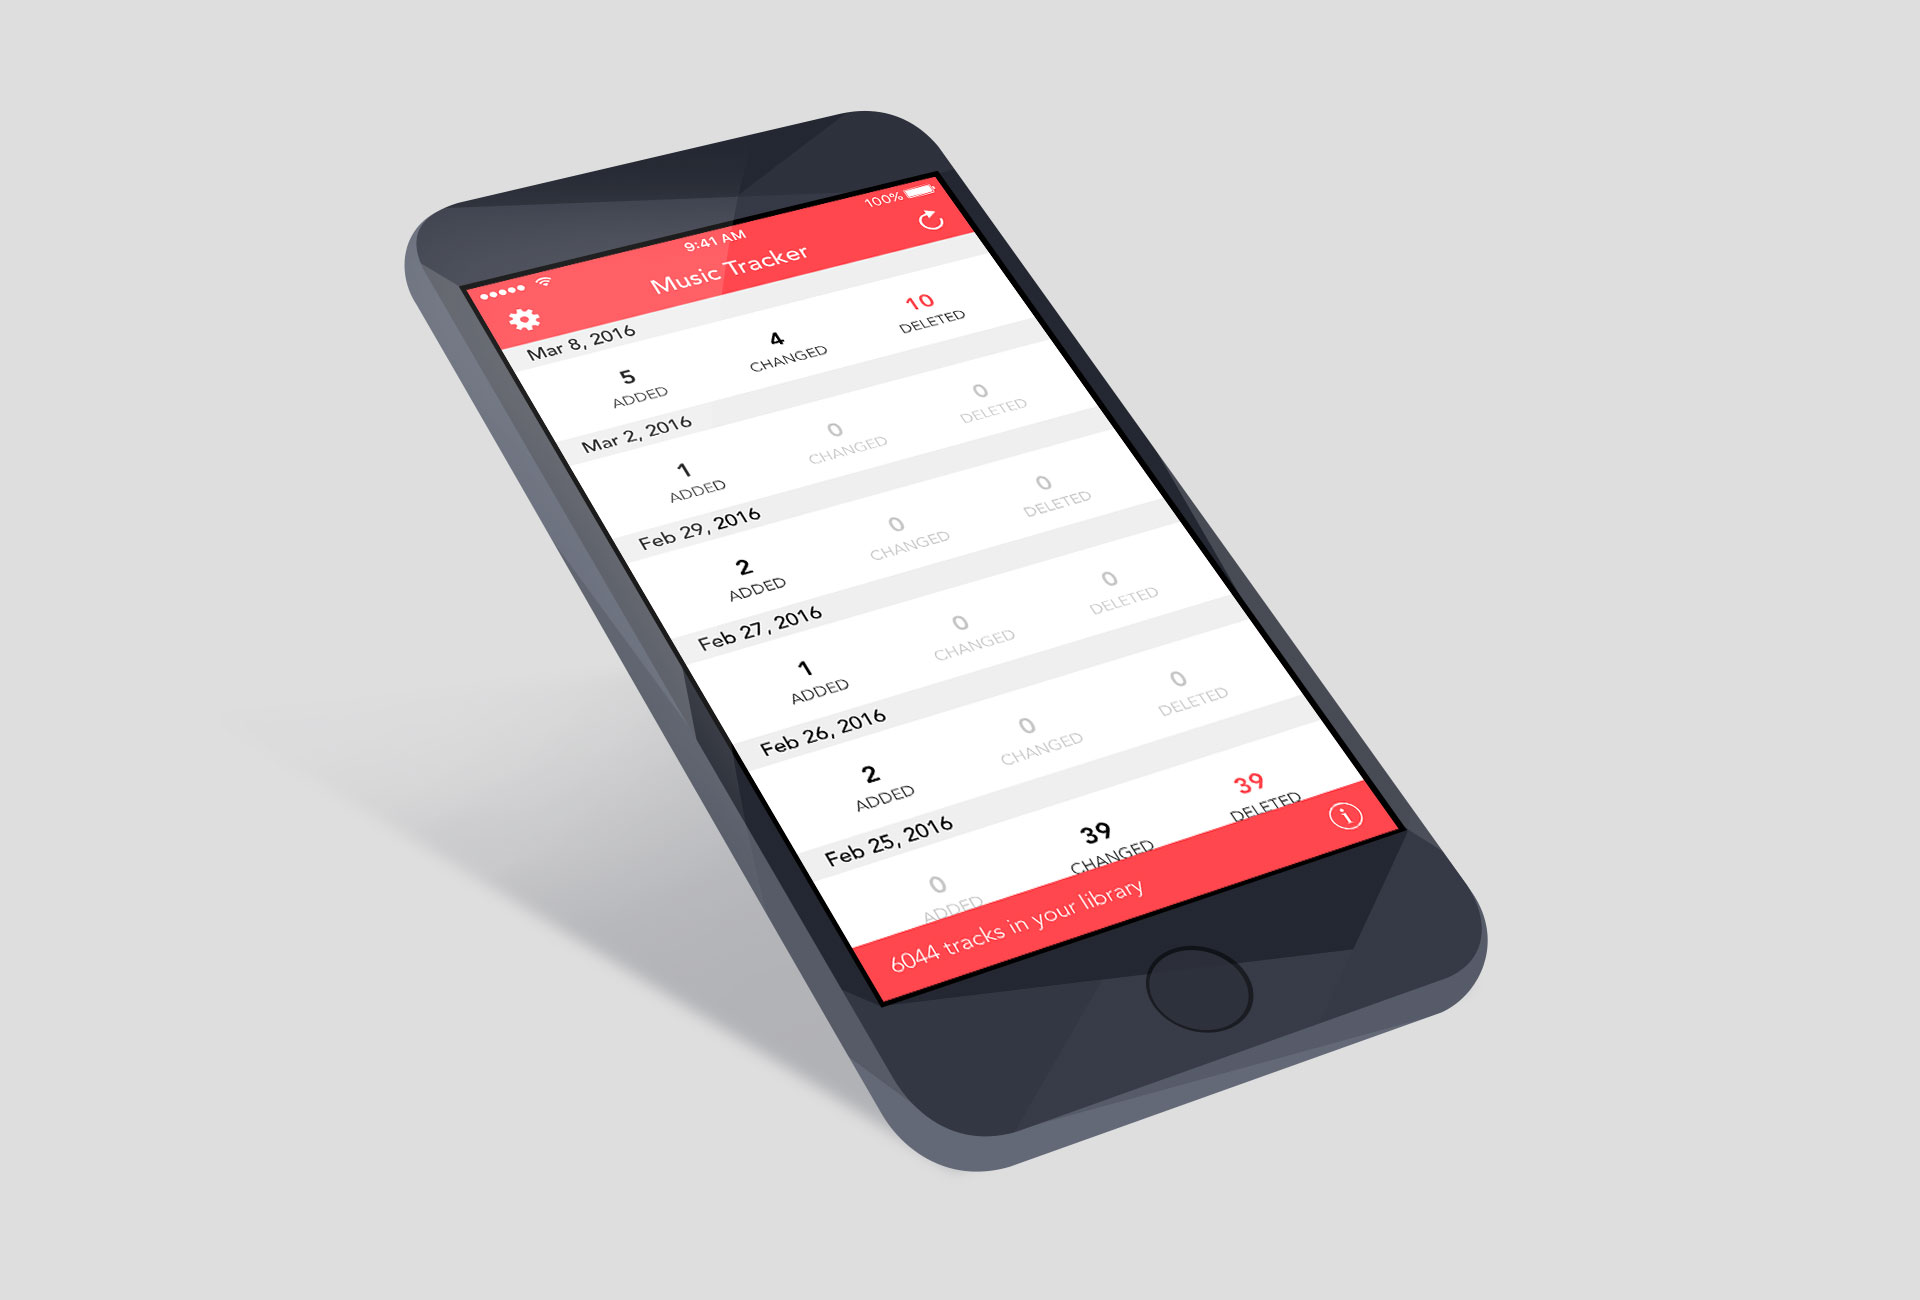 Music Tracker for iPhone, developed by Ben Dodson